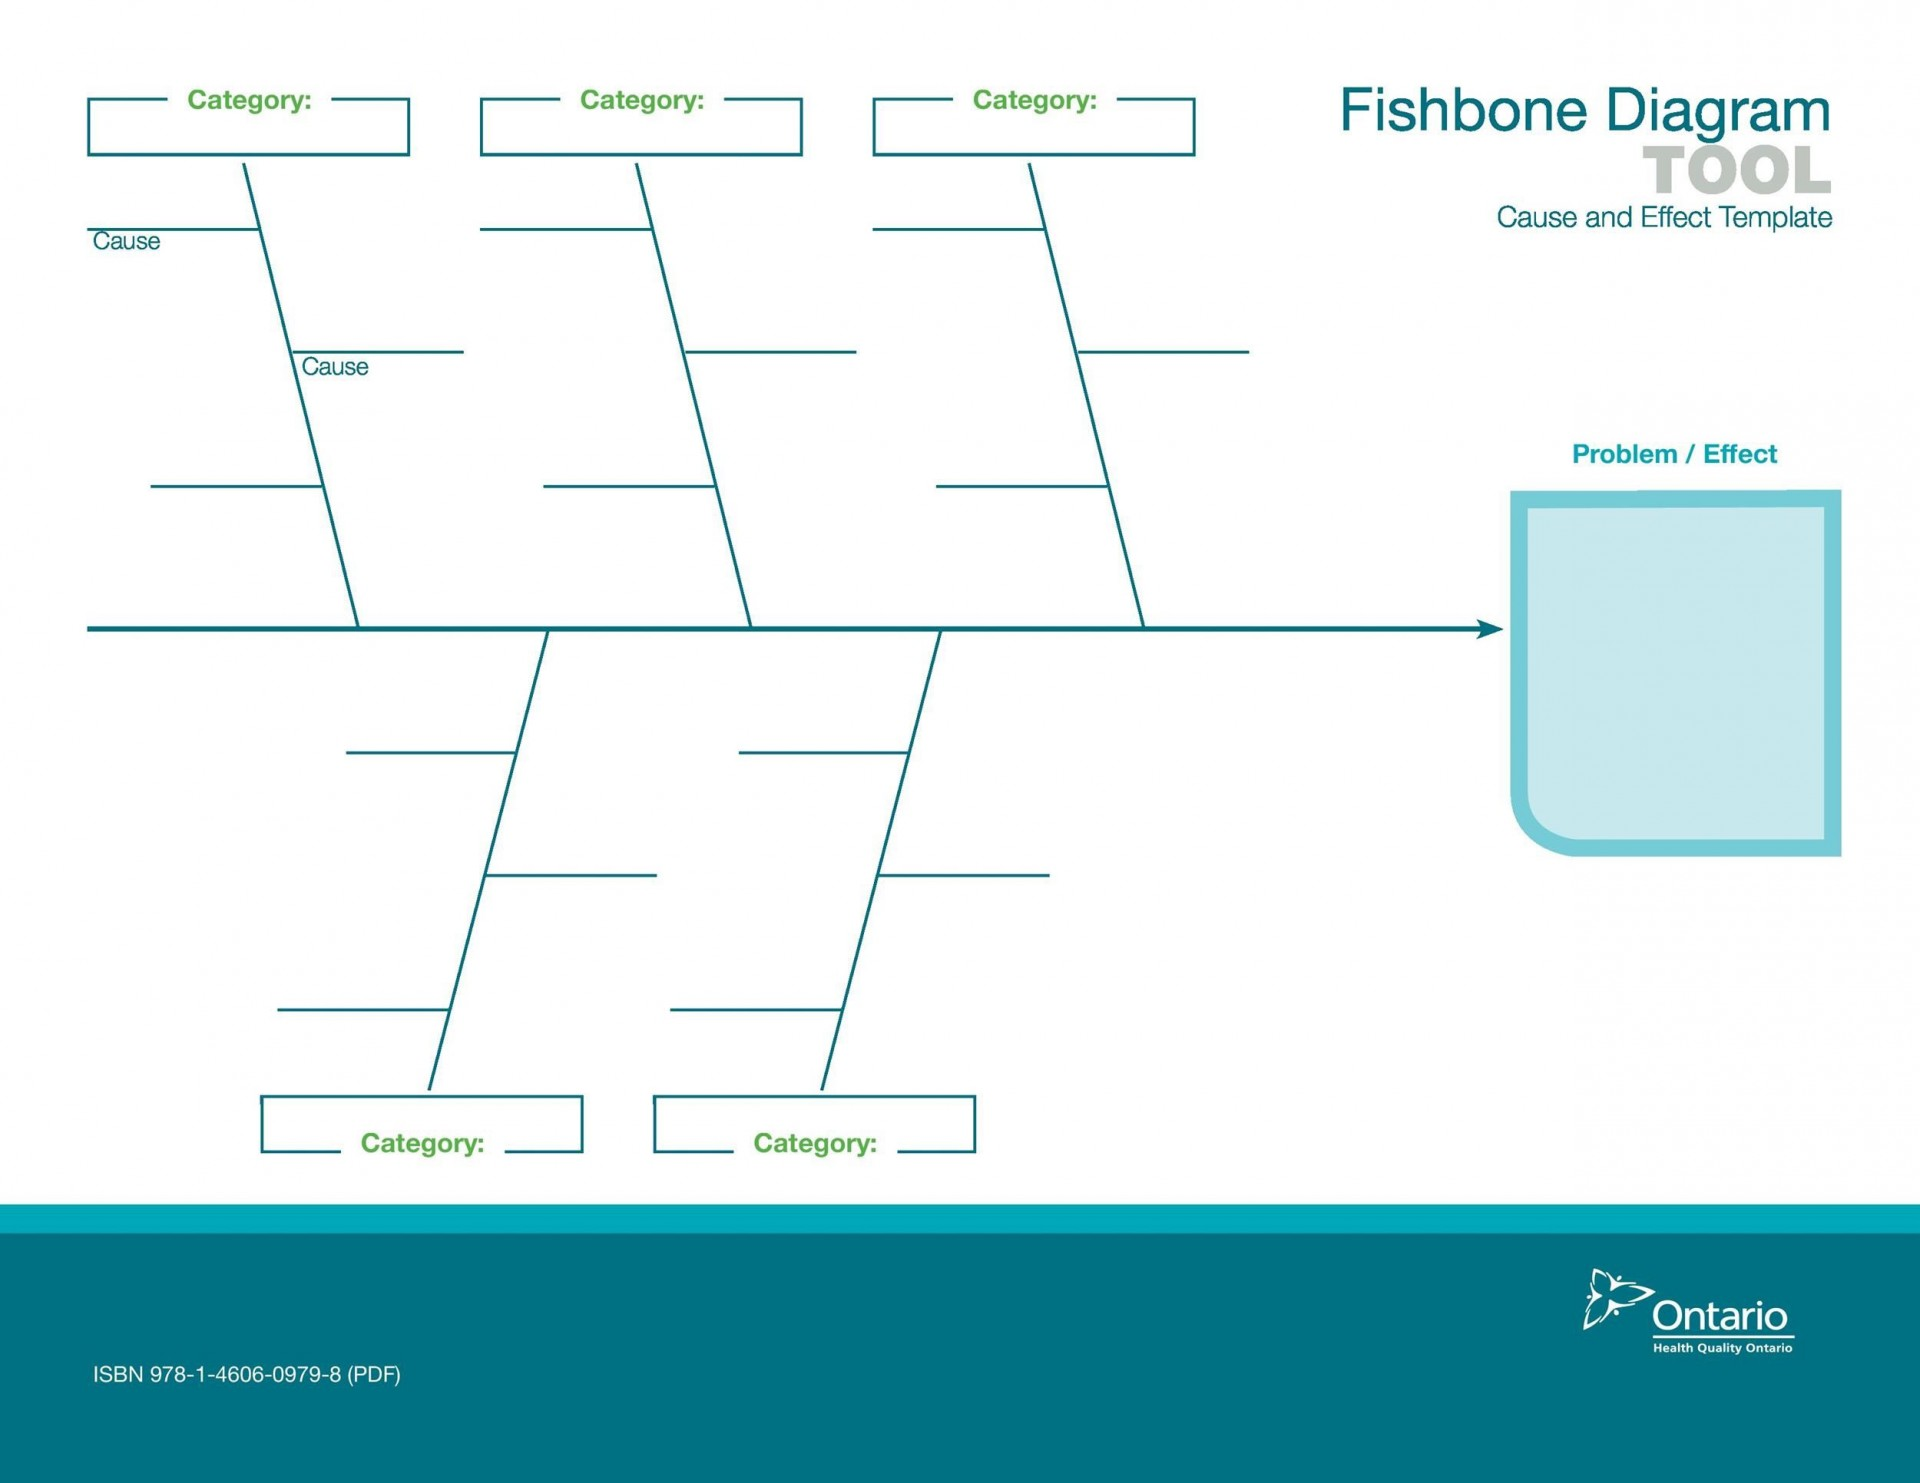 006 Fearsome Free Fishbone Diagram Template Microsoft Word Highest Quality 1920